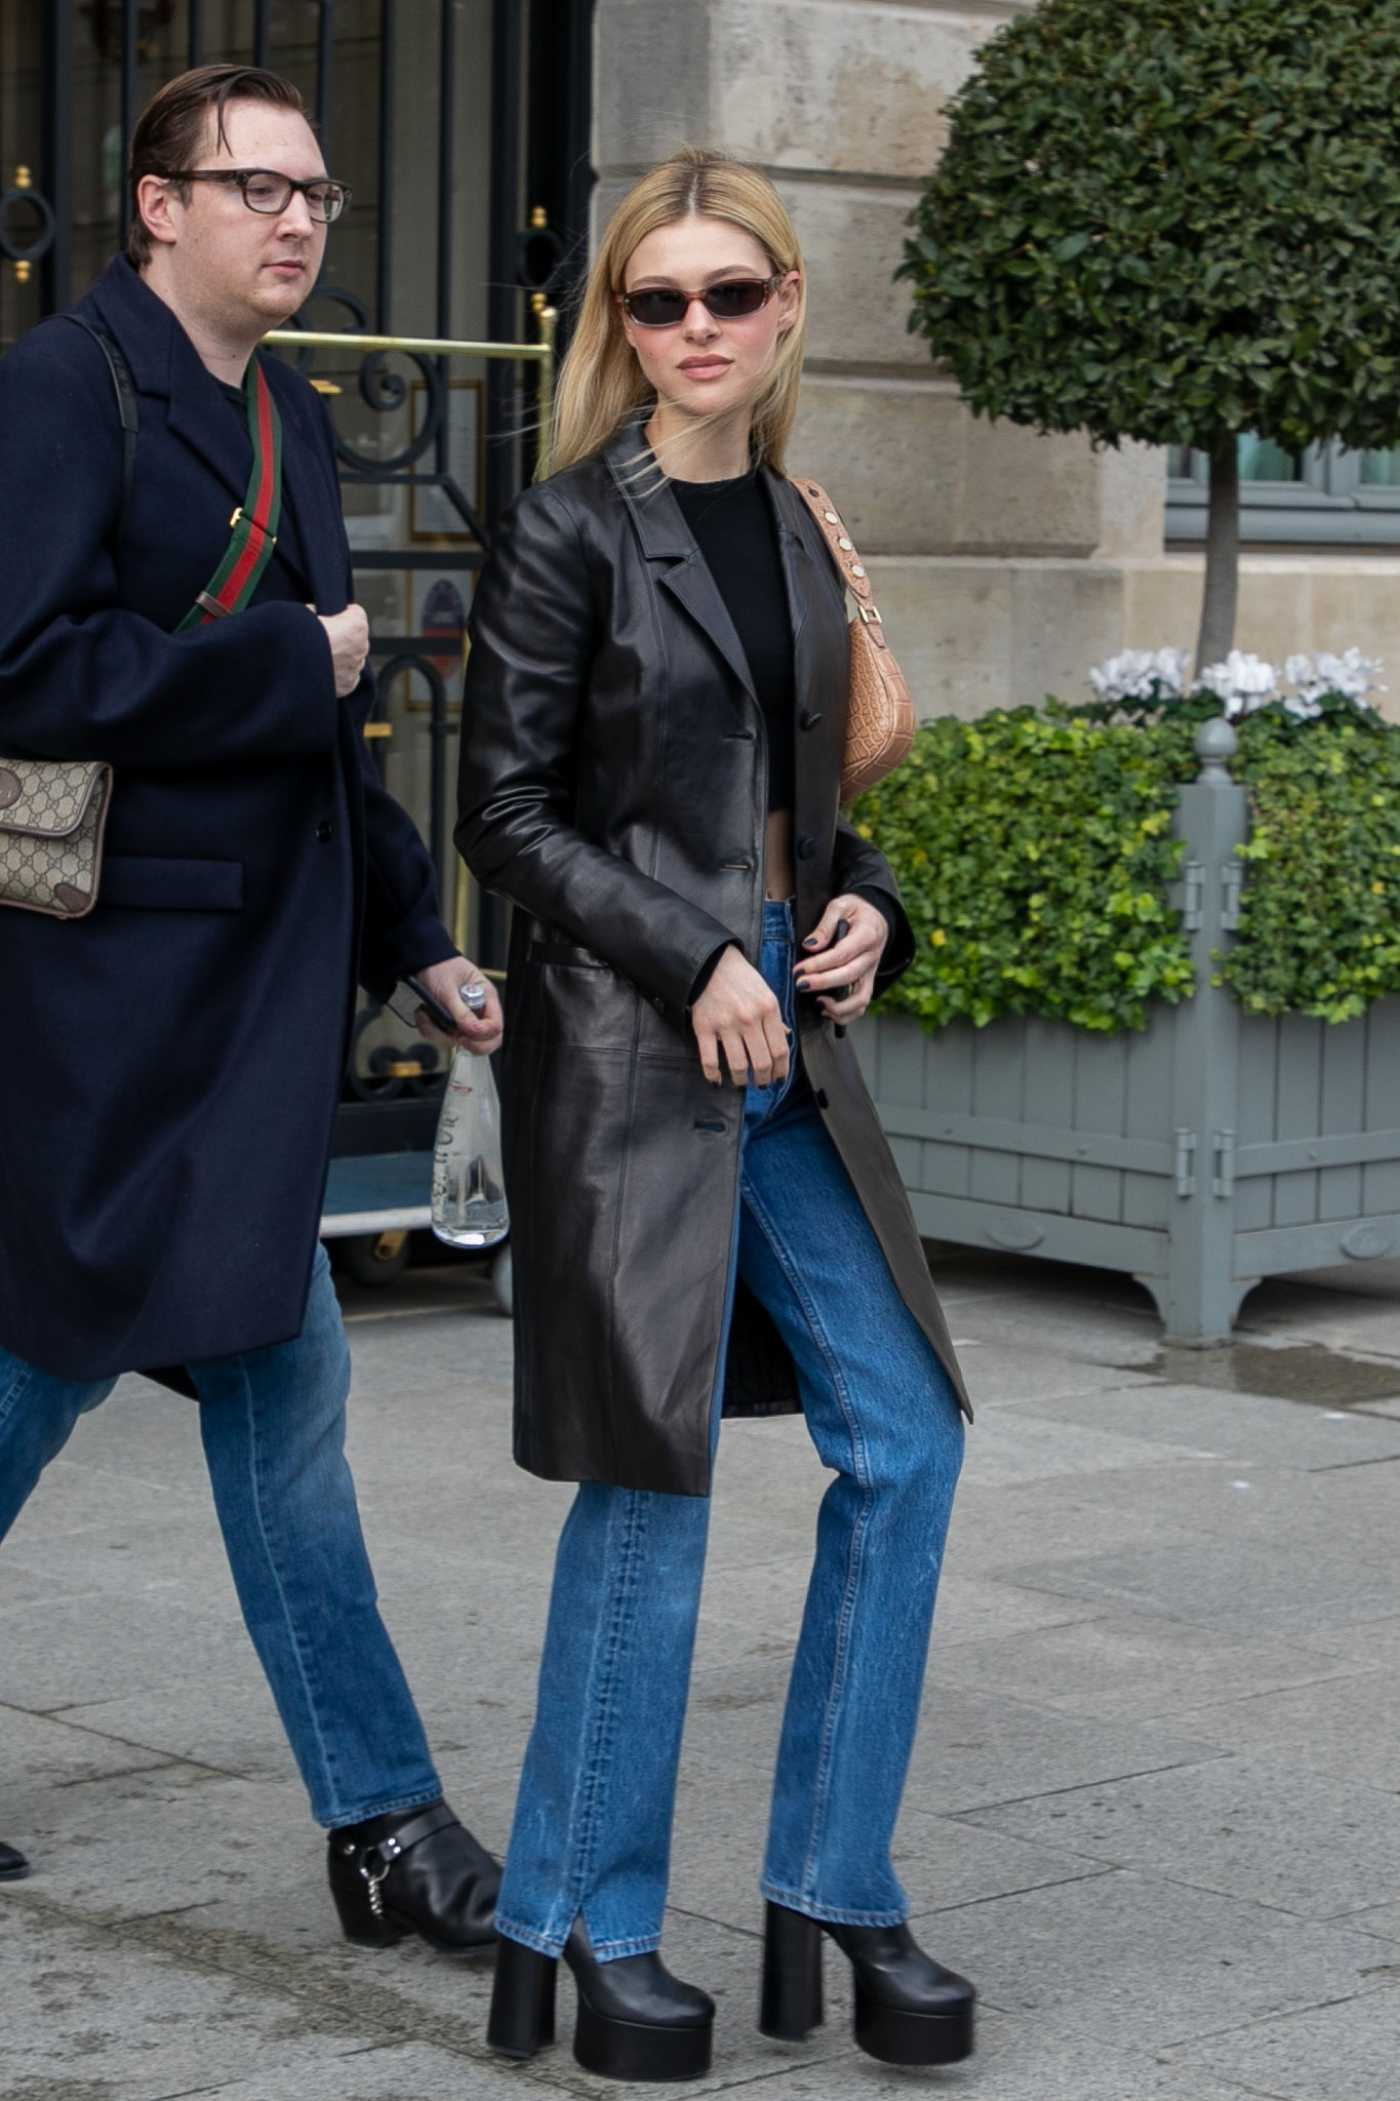 Nicola Peltz in a Black Leather Trench Coat Was Seen Out in Paris 02/25/2020